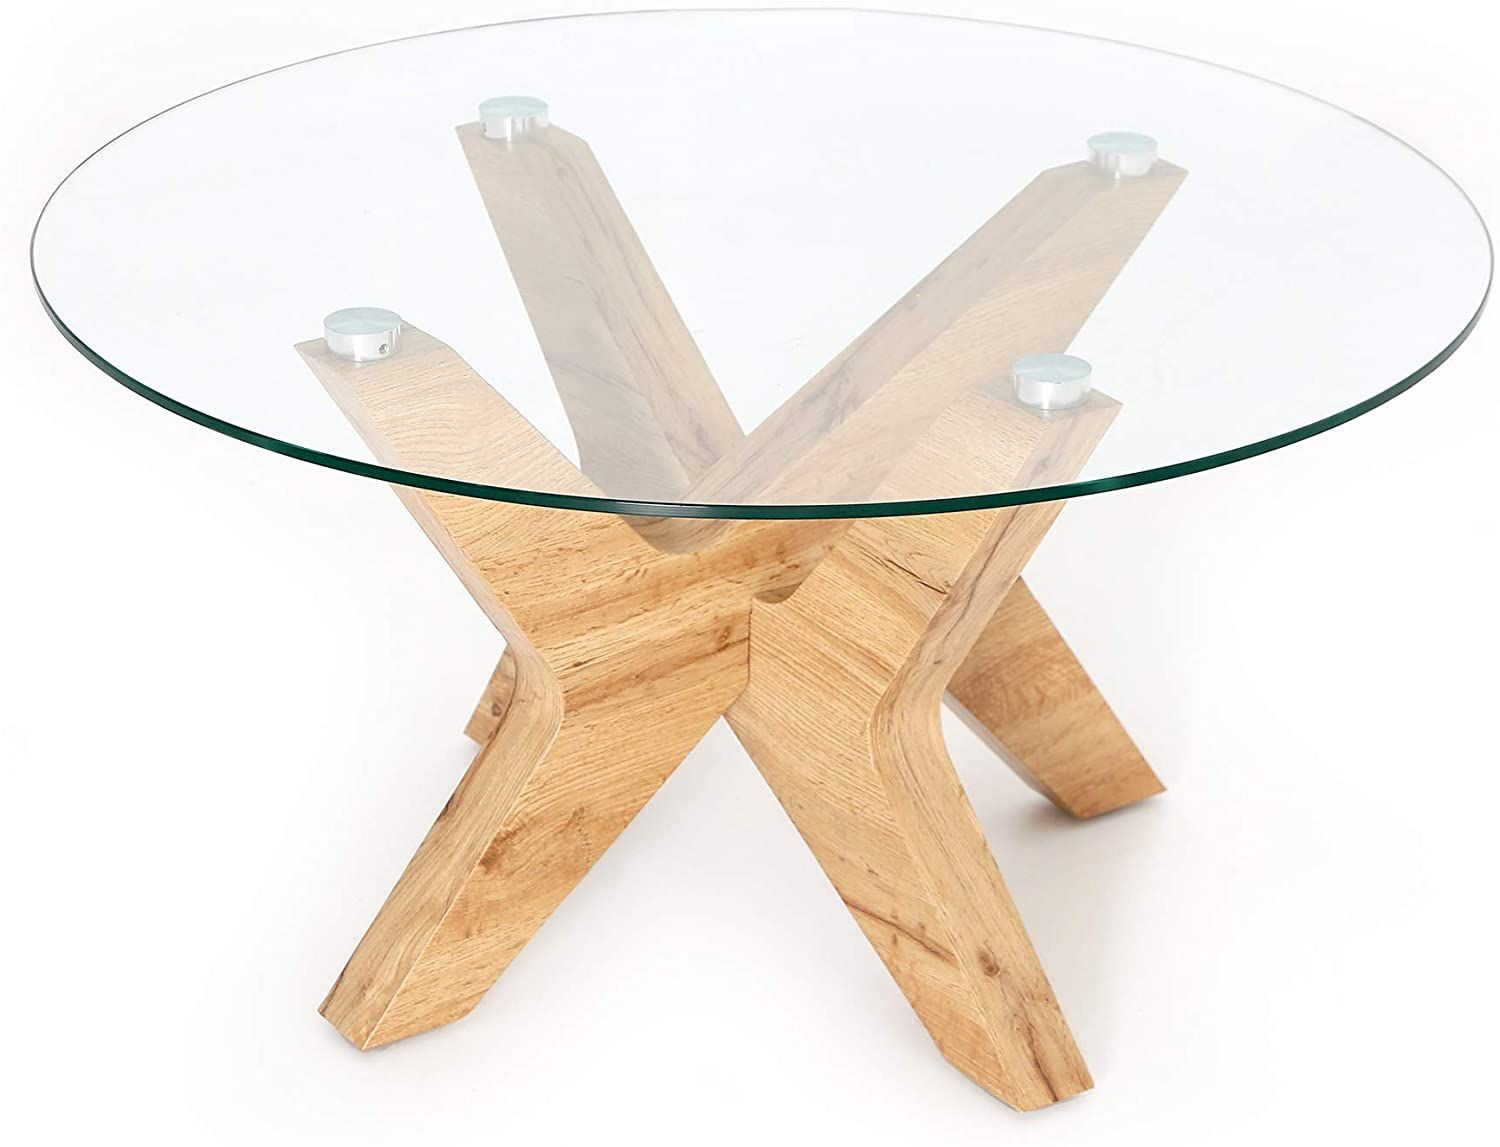 Ivinta Glass Coffee Table Round Industrial Design With Wood Frame For Living Room Home Dining Room Round Glass Coffee Table Coffee Table Elegant Coffee Table [ 1147 x 1500 Pixel ]